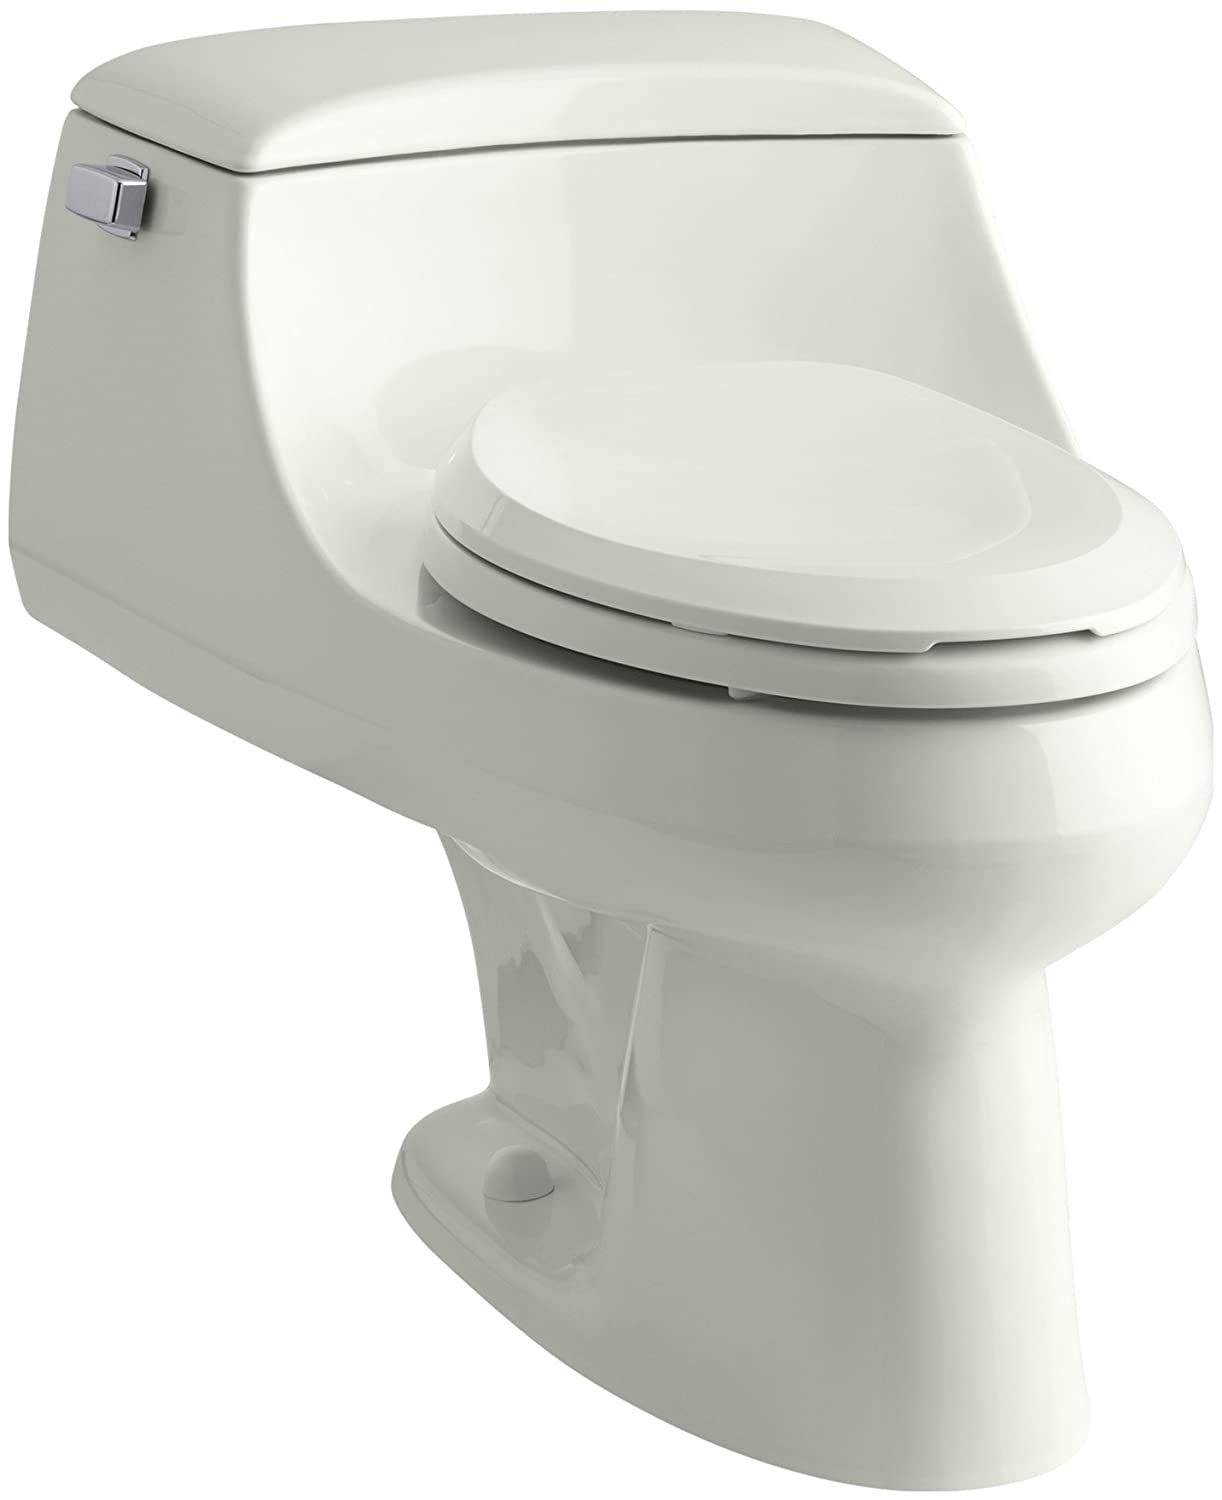 Toto toilets apartment therapy - Kohler K 3466 33 San Raphael One Piece Elongated Toilet Mexican